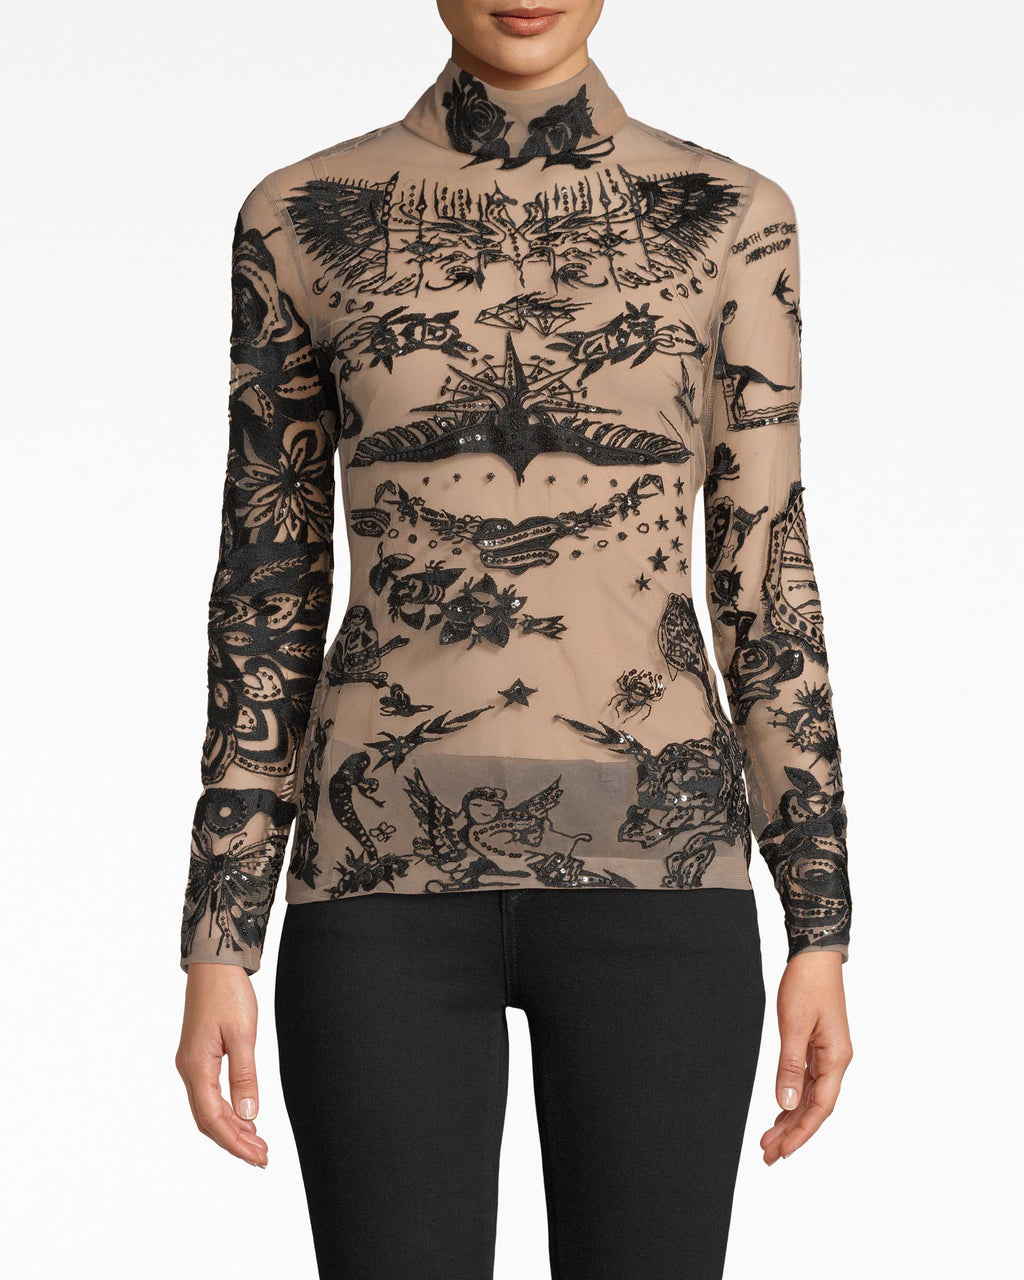 BQ20078 - TATTOO MESH LONG SLEEVE TURTLENECK TOP - tops - blouses - Tatted up. Our Tattoo Mesh long sleeve top fits snugly to your frame while achieving that turtleneck chic effect. Embellishments may vary to style.